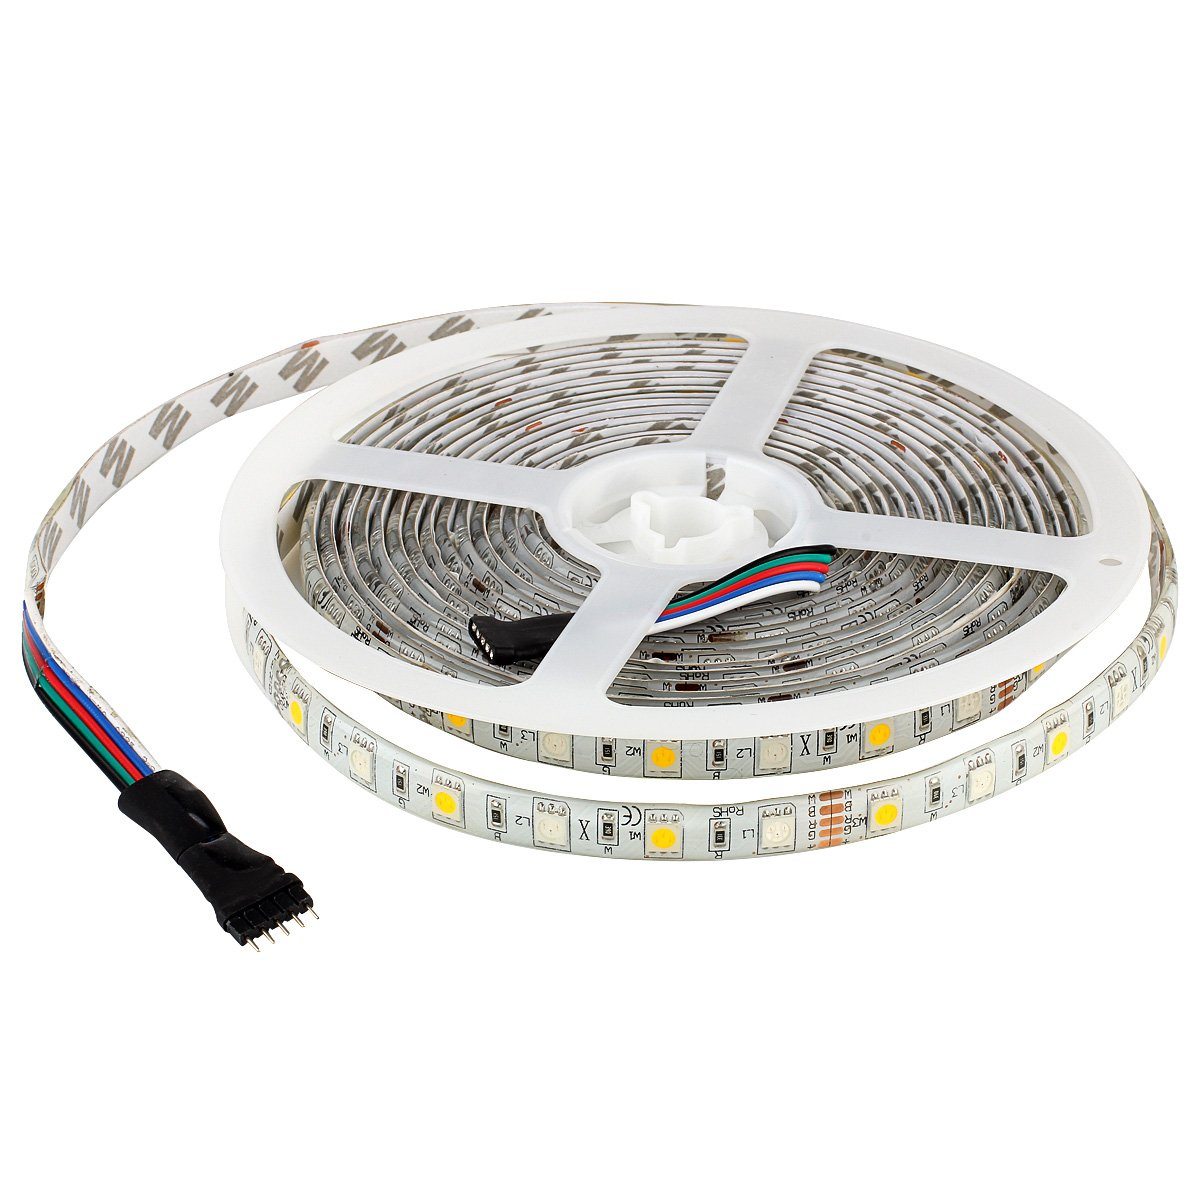 SUPERNIGHT RGBW LED Strip Light RGB Color Changing Rope Lighting with Warm White 3500K Color 16.4ft 300leds 5050 Tape Light (RGB + Warm White) by SUPERNIGHT (Image #2)